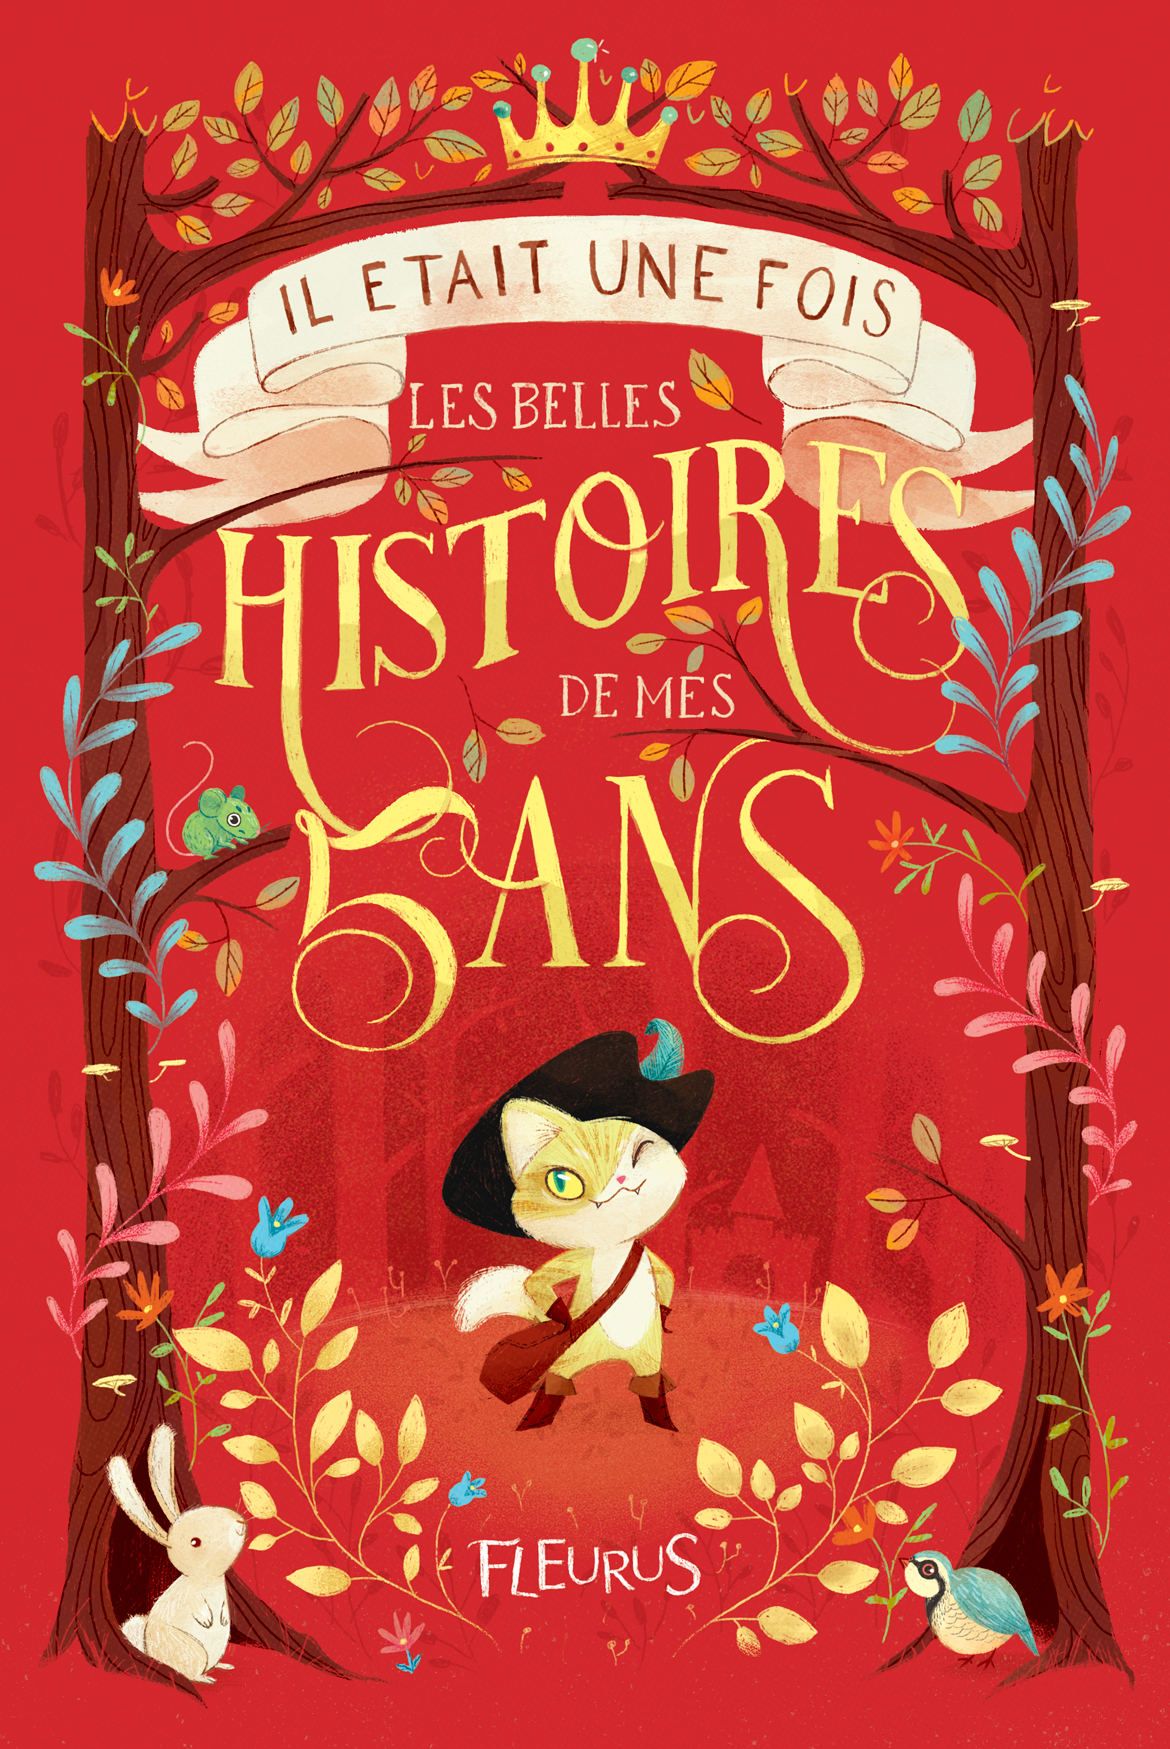 Children S Book Cover Canvas Art : Children s book covers for fleurus editions on behance